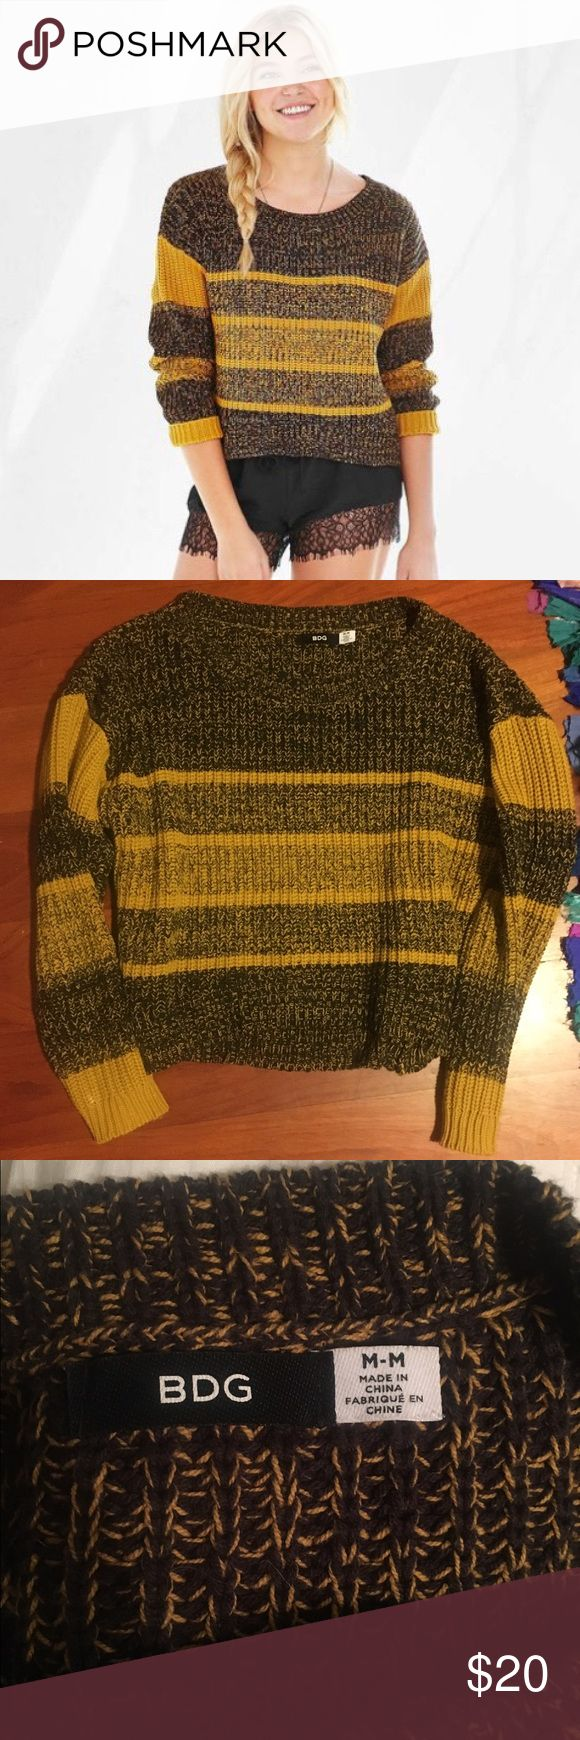 Urban outfitters mustard crop sweater Urban outfitters BDG mustard and black knit sweater Urban Outfitters Sweaters Crew & Scoop Necks